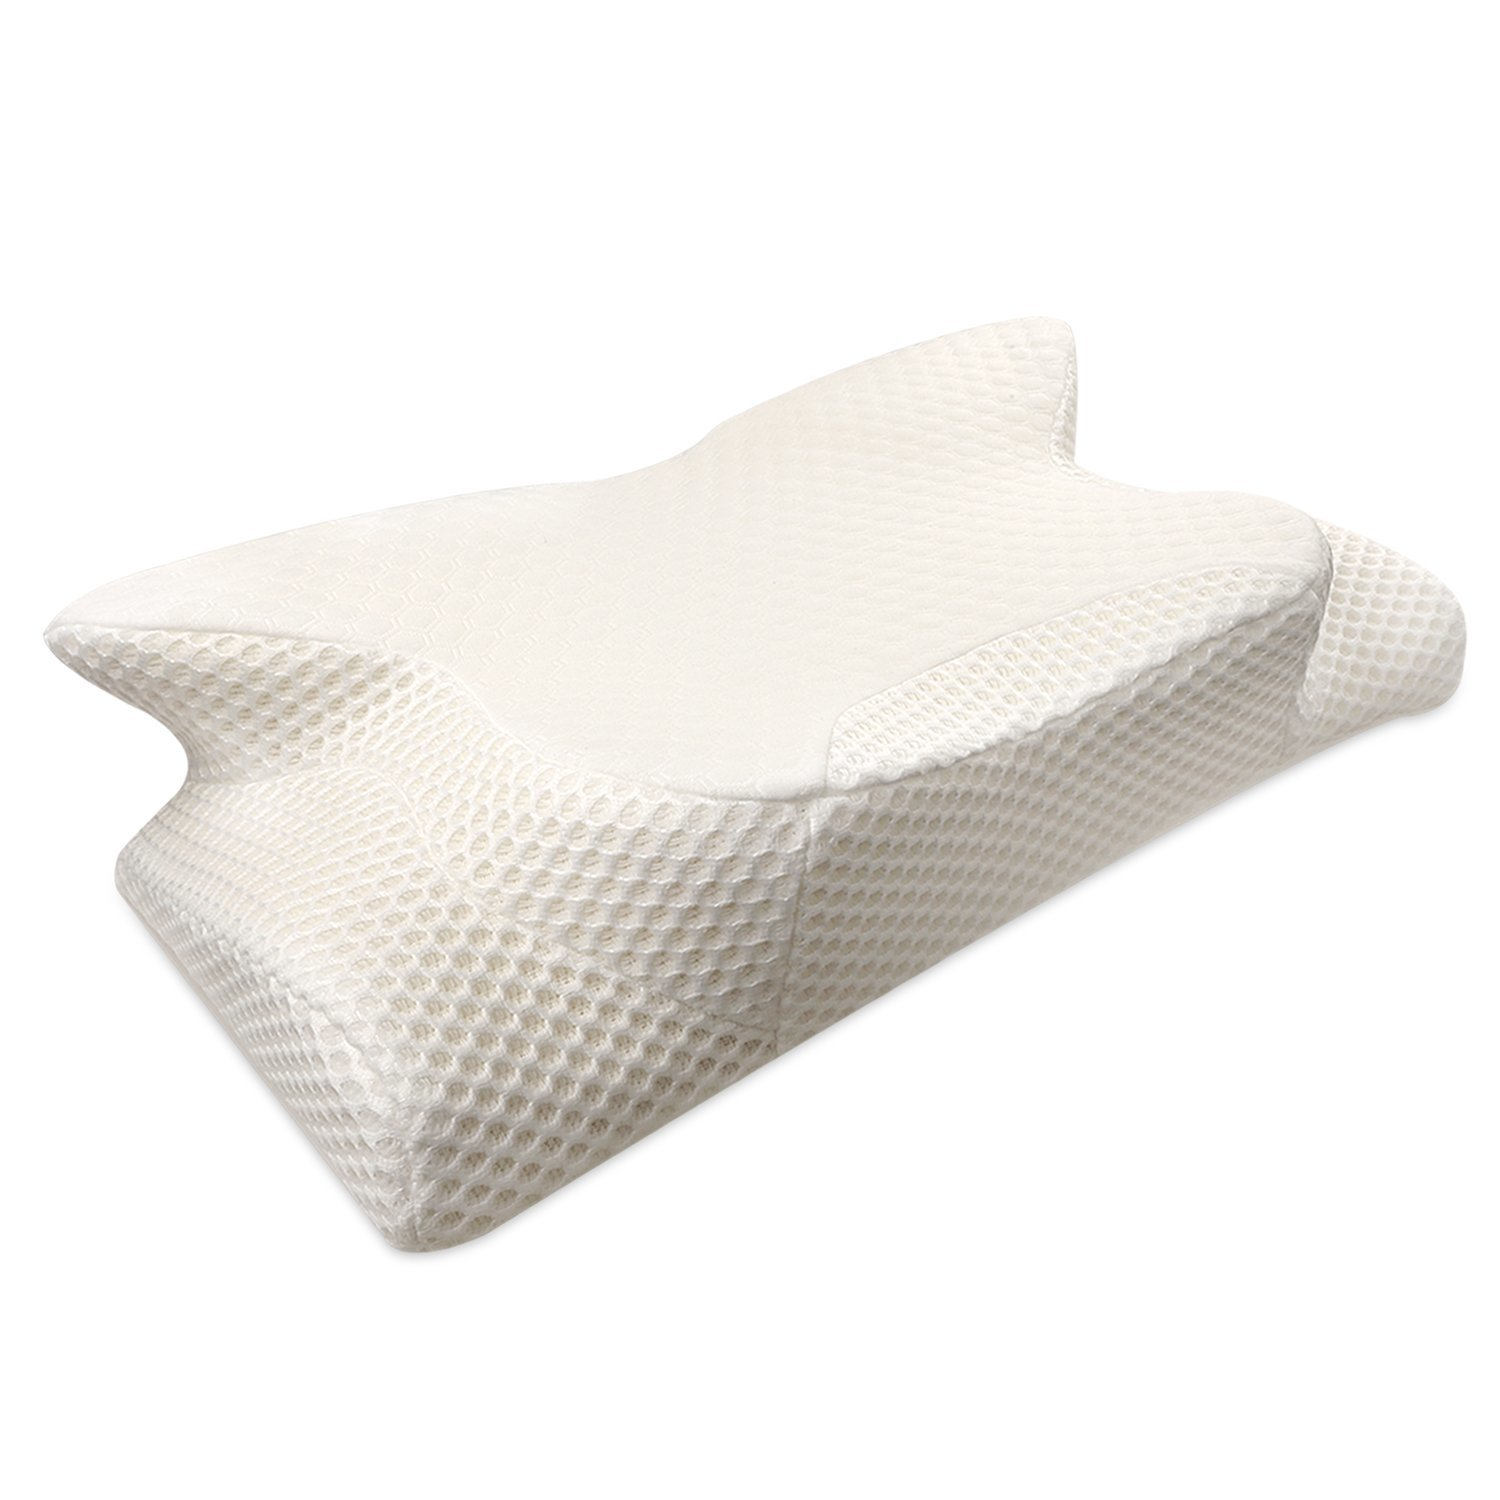 Best Side Sleeper Pillows 2019 Reviews And Consumer